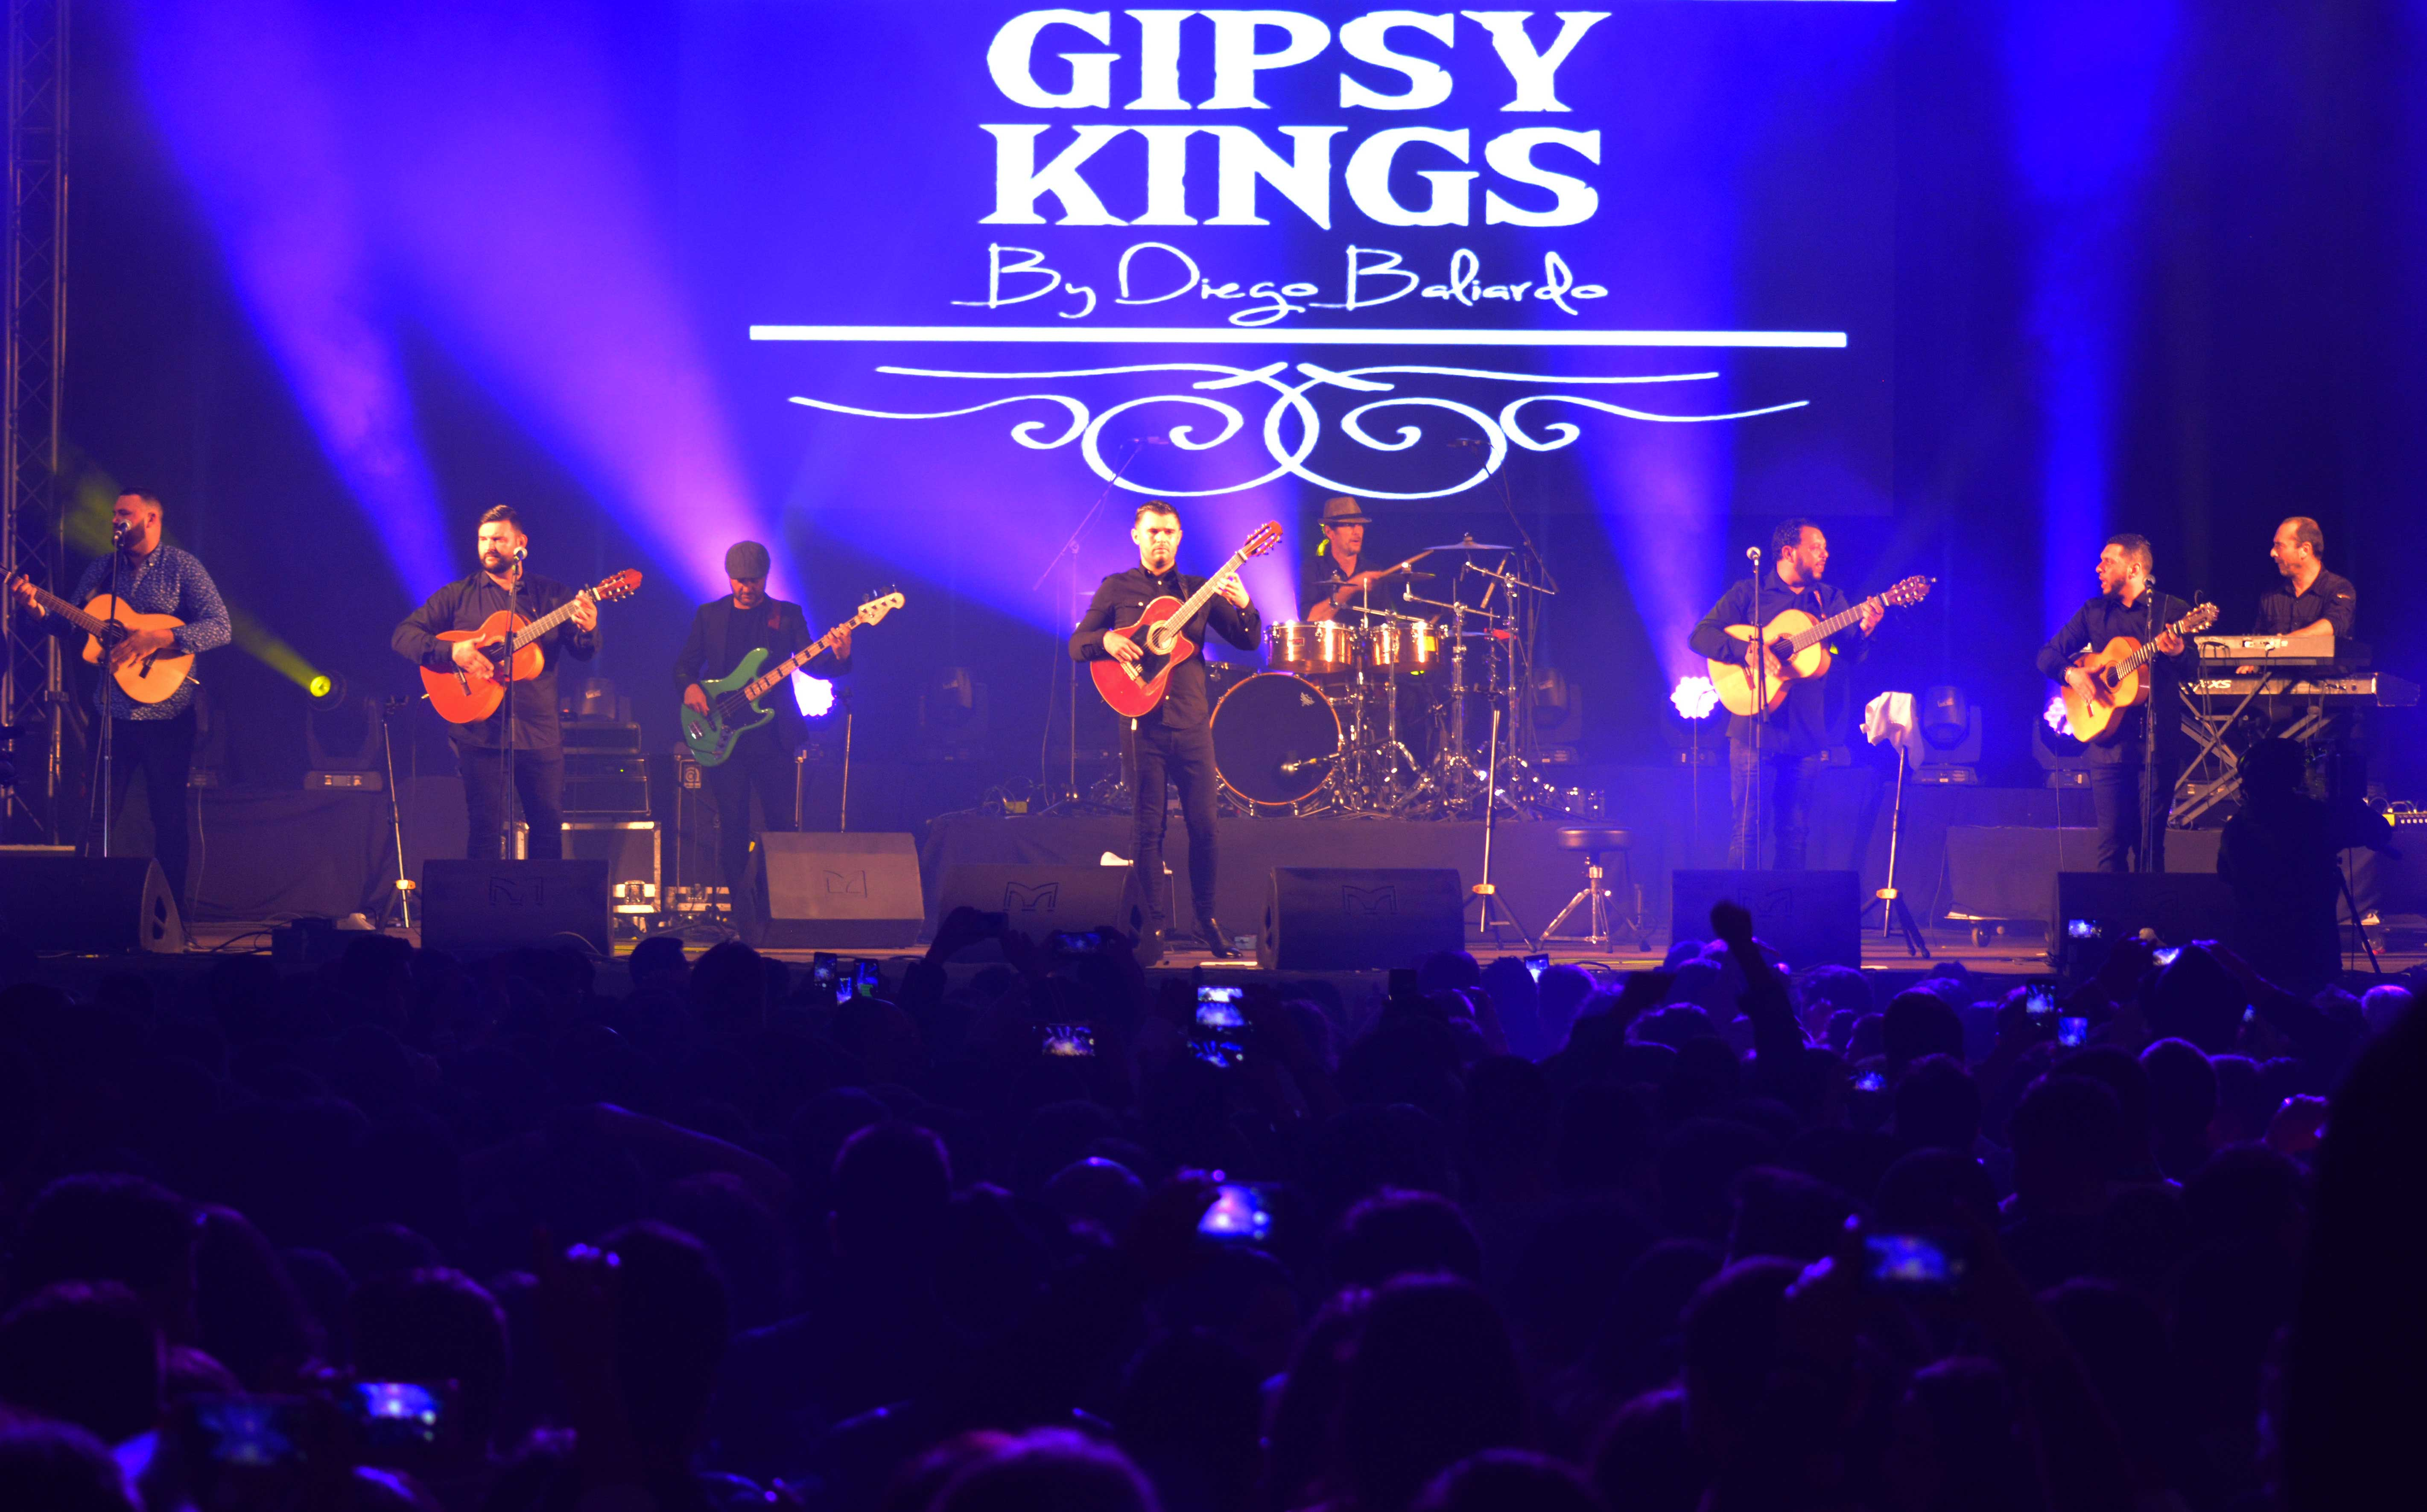 GIPSY KINGS by DIEGO BALIARDO - PORTUGAL